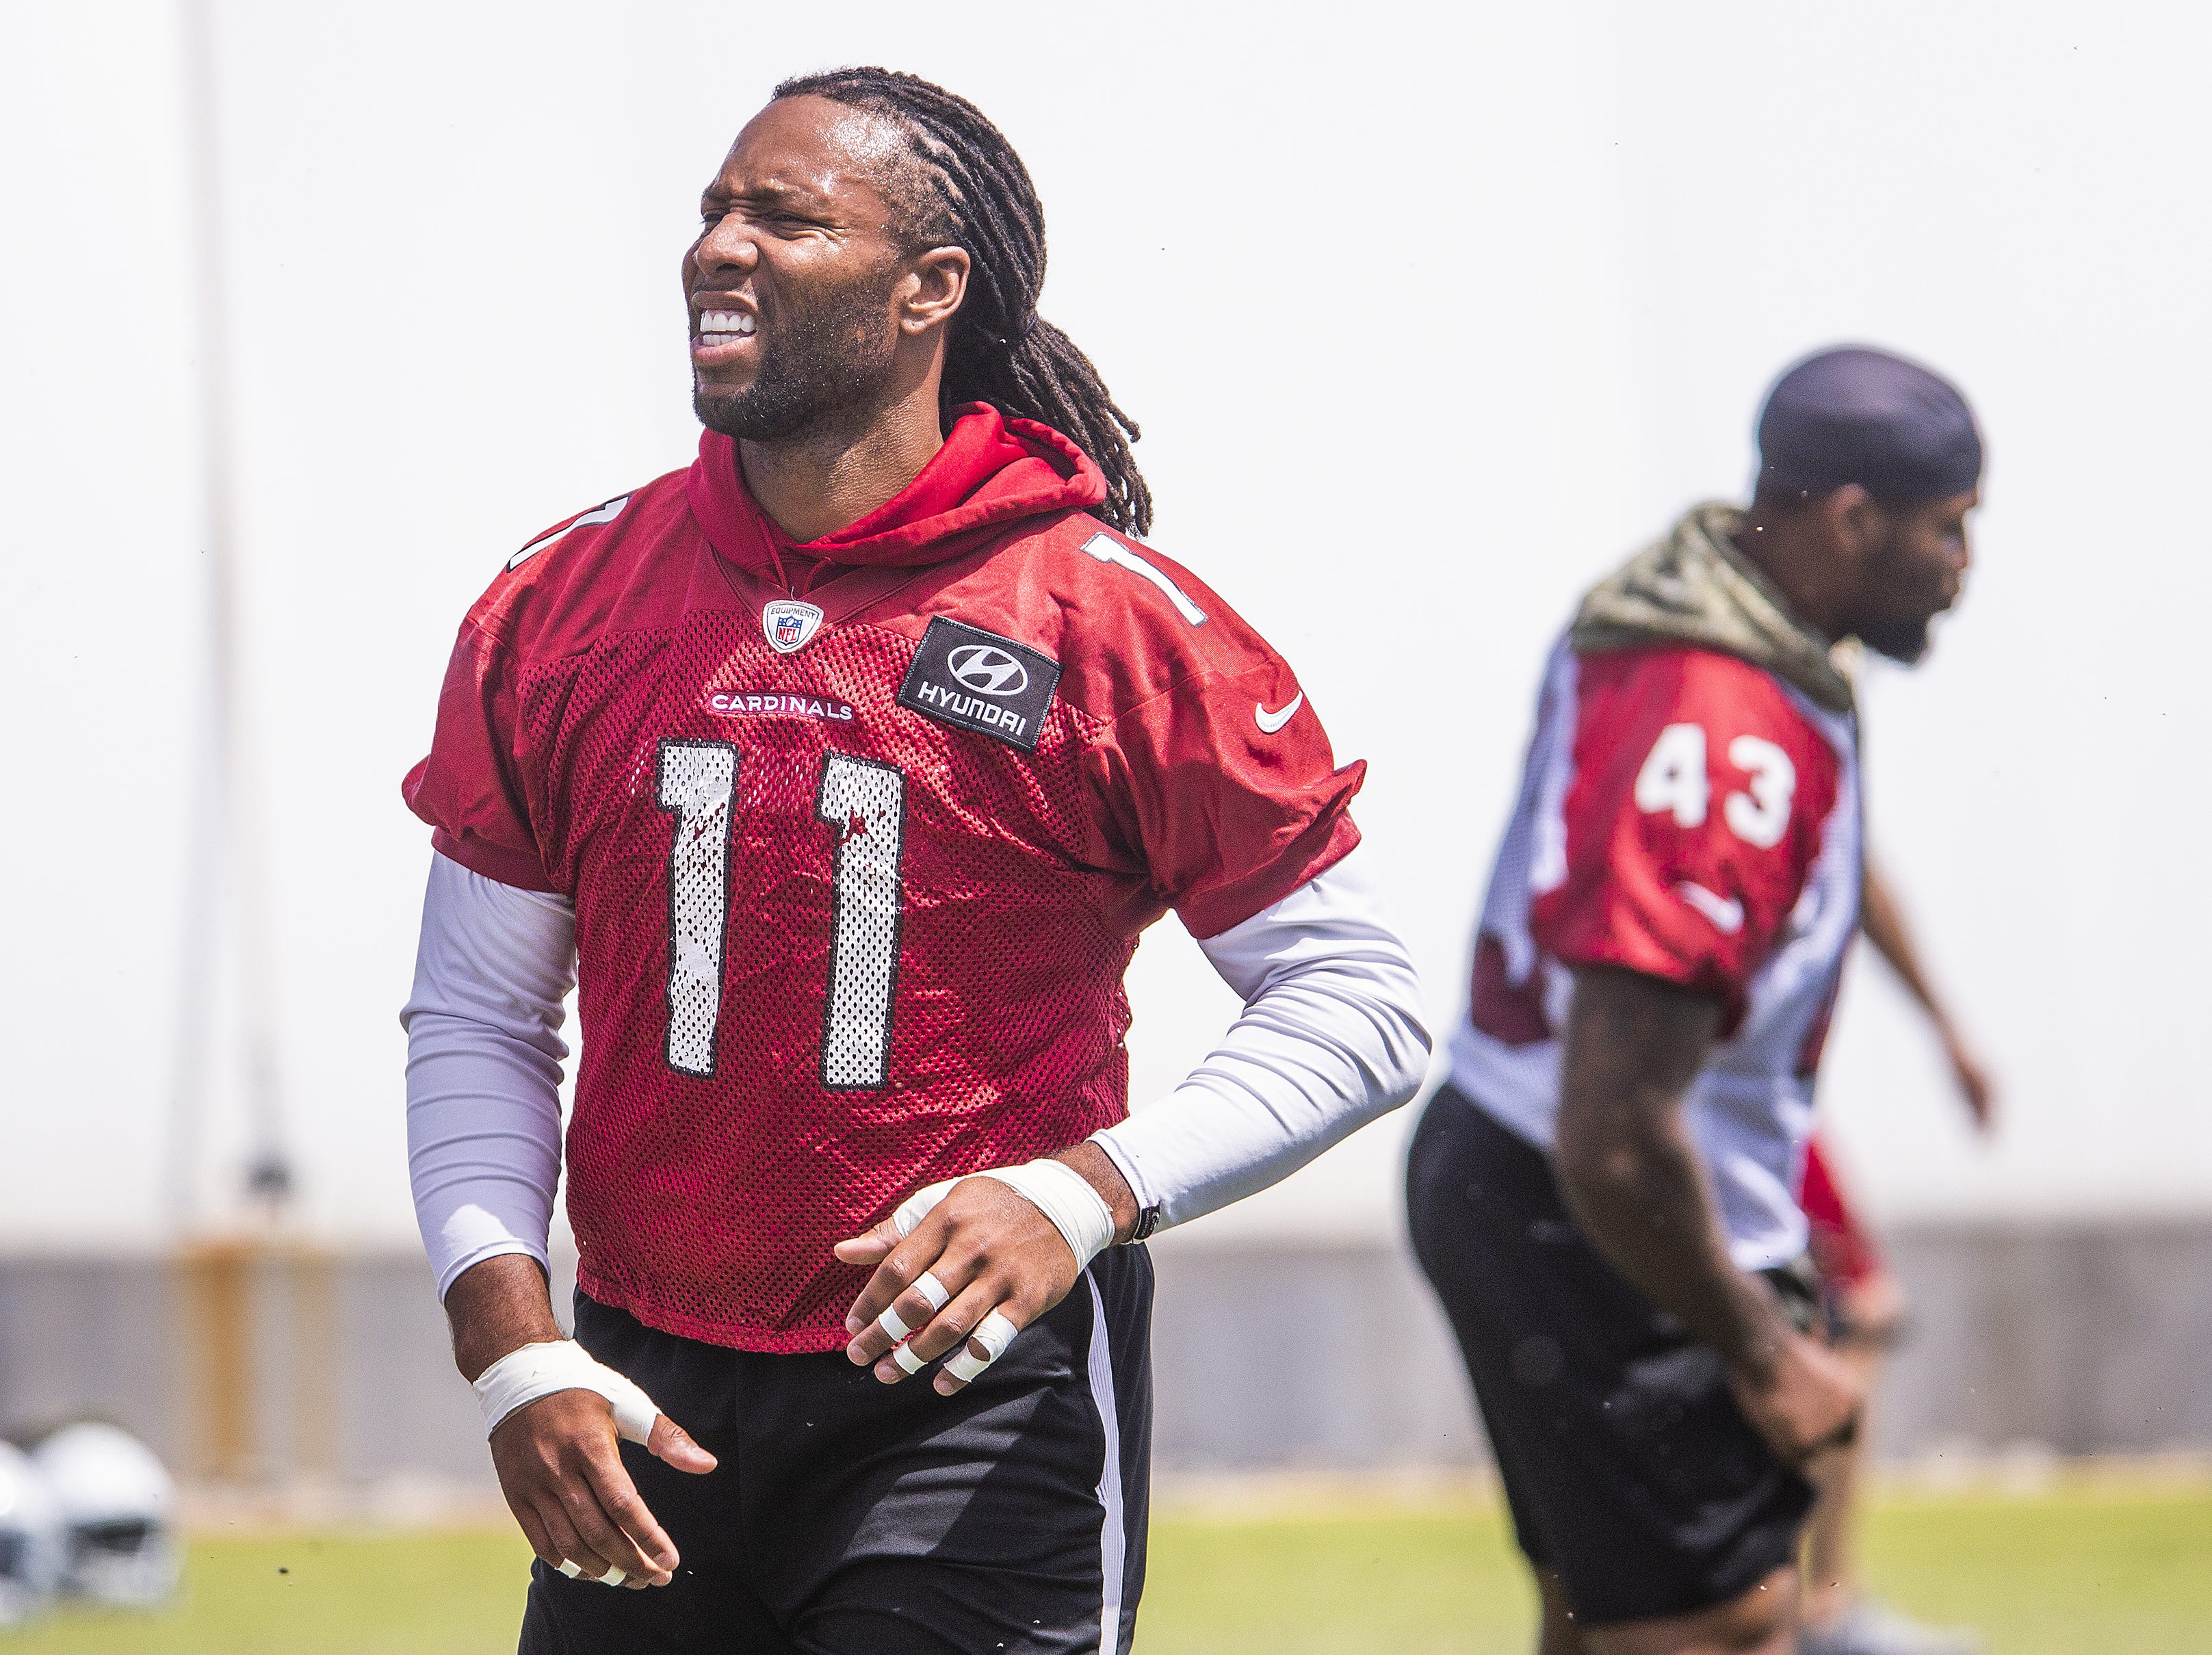 Arizona Cardinals wide receiver Larry Fitzgerald prepares for this 16th season with the Cardinals at the optional mini camp at the Tempe training facility, Tuesday, April 23, 2019.